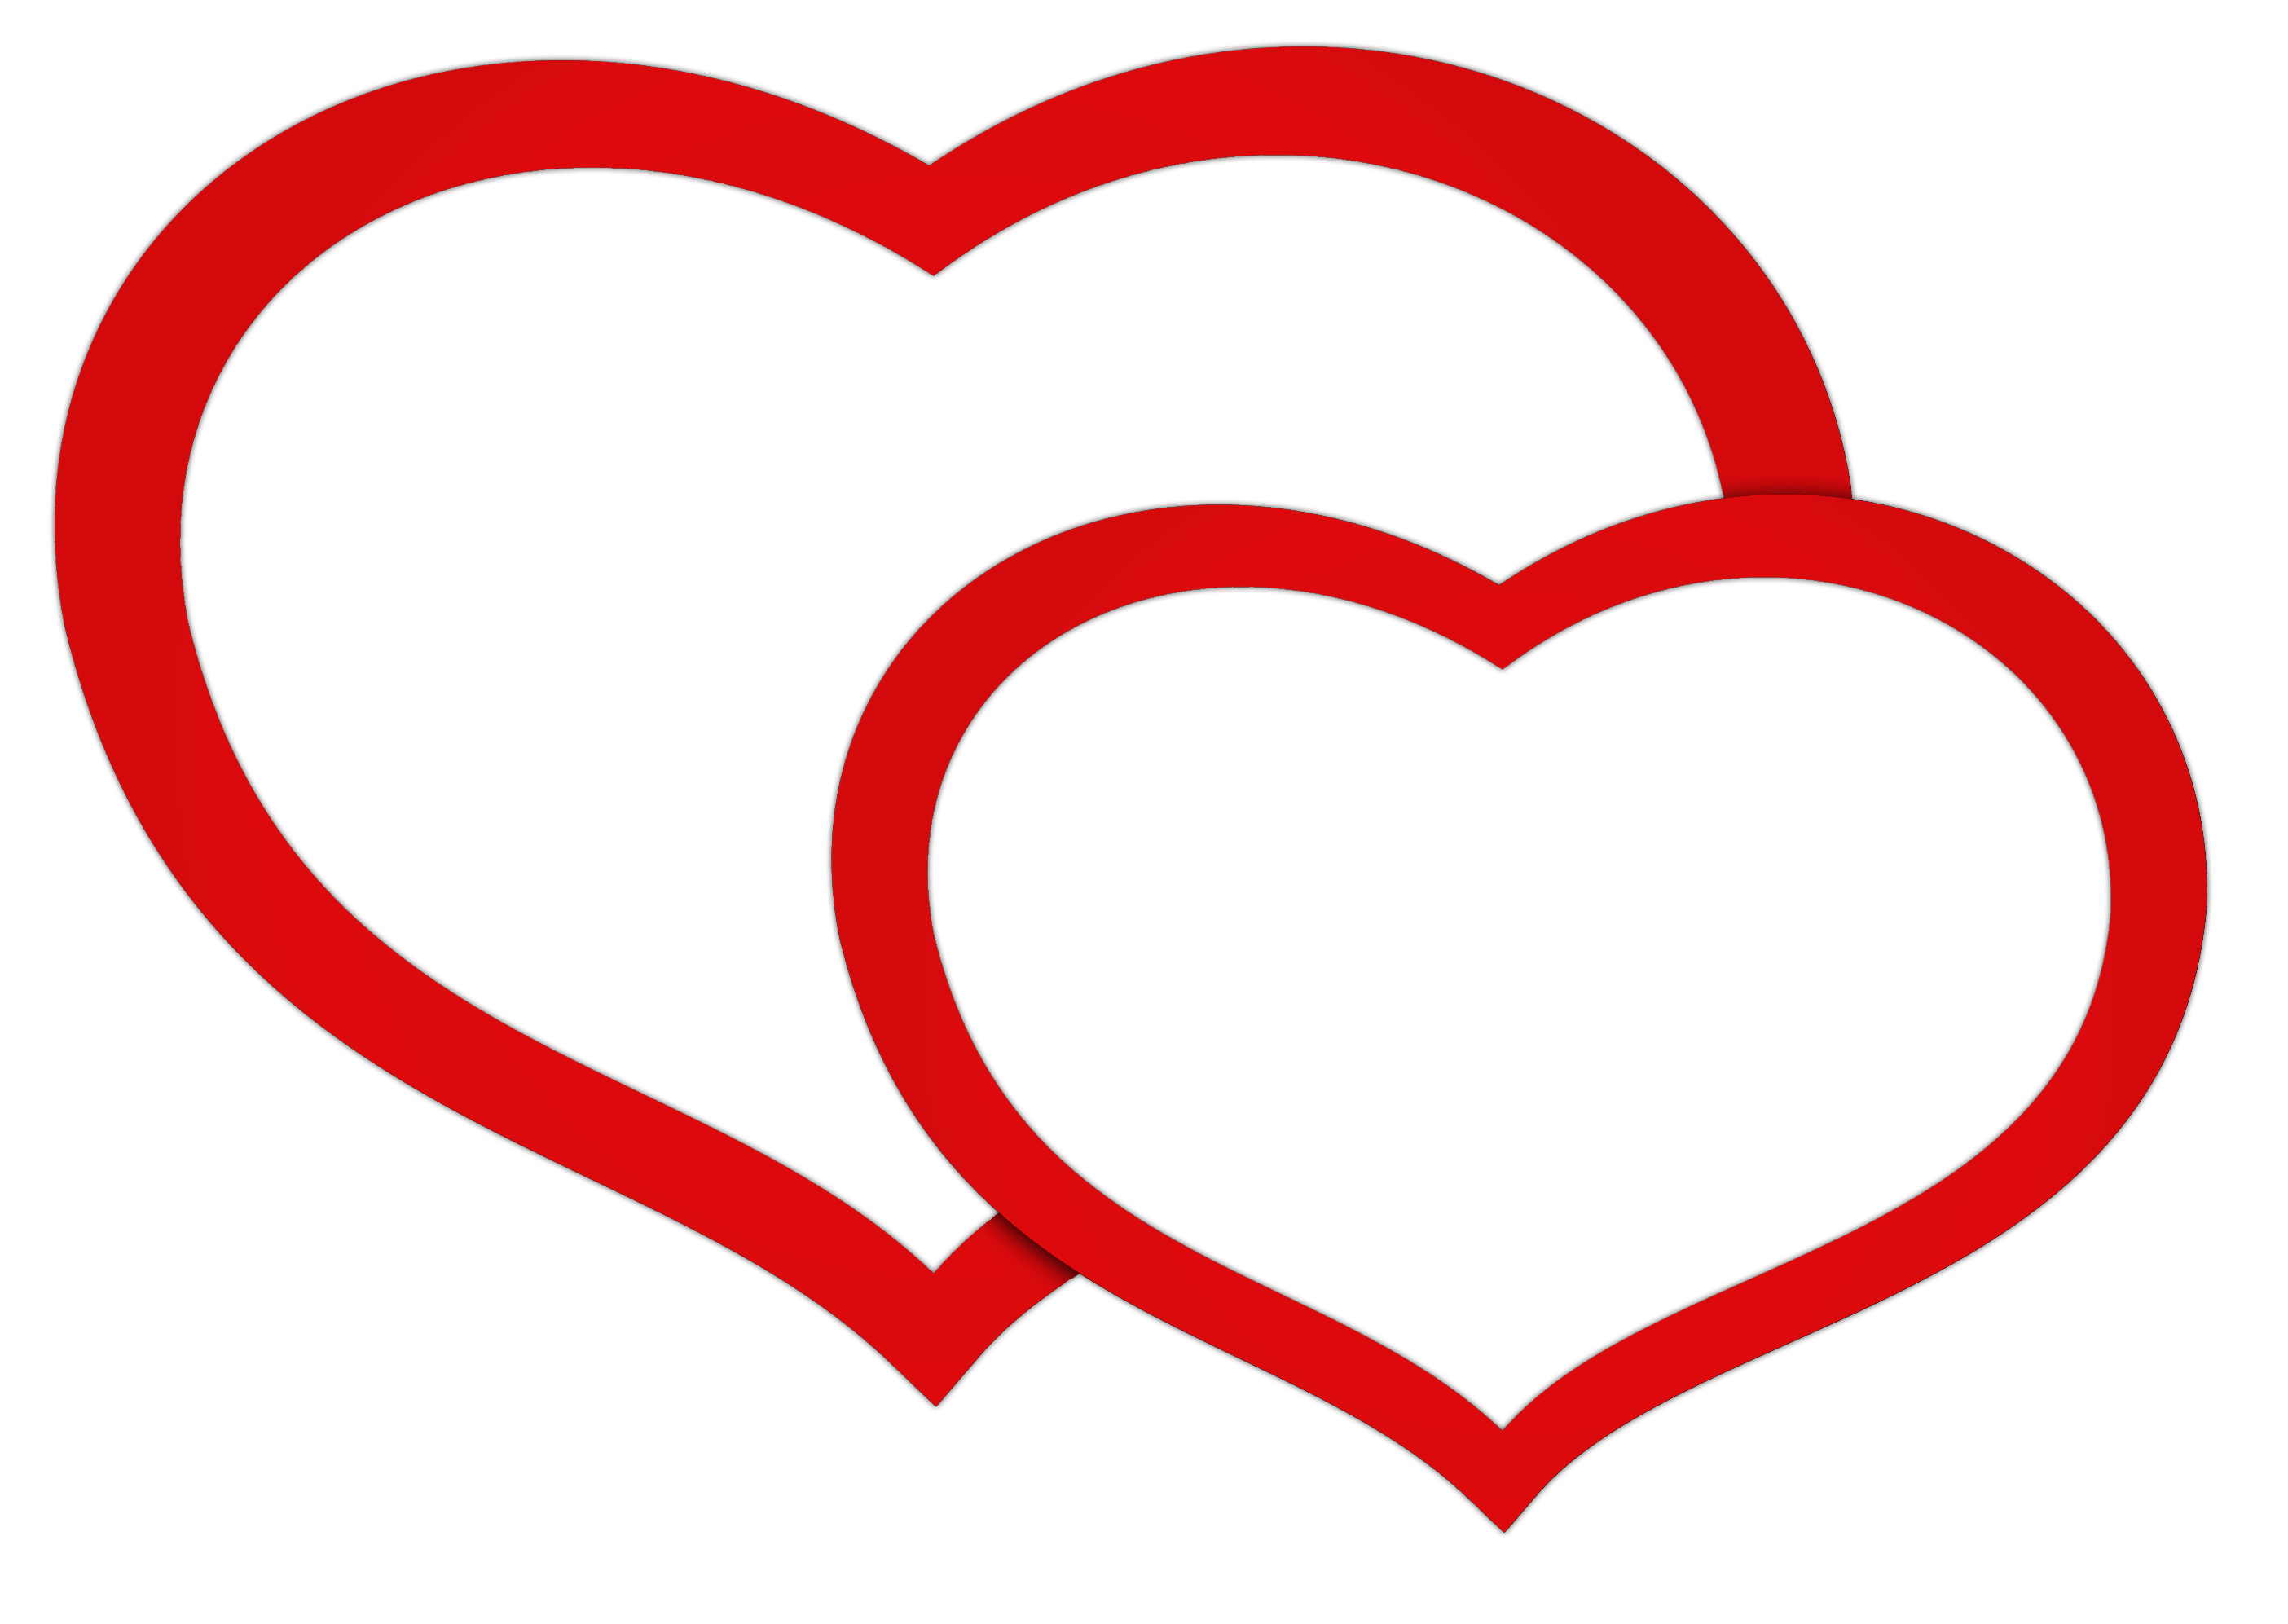 Double Hearts Clip Art - Cliparts.co